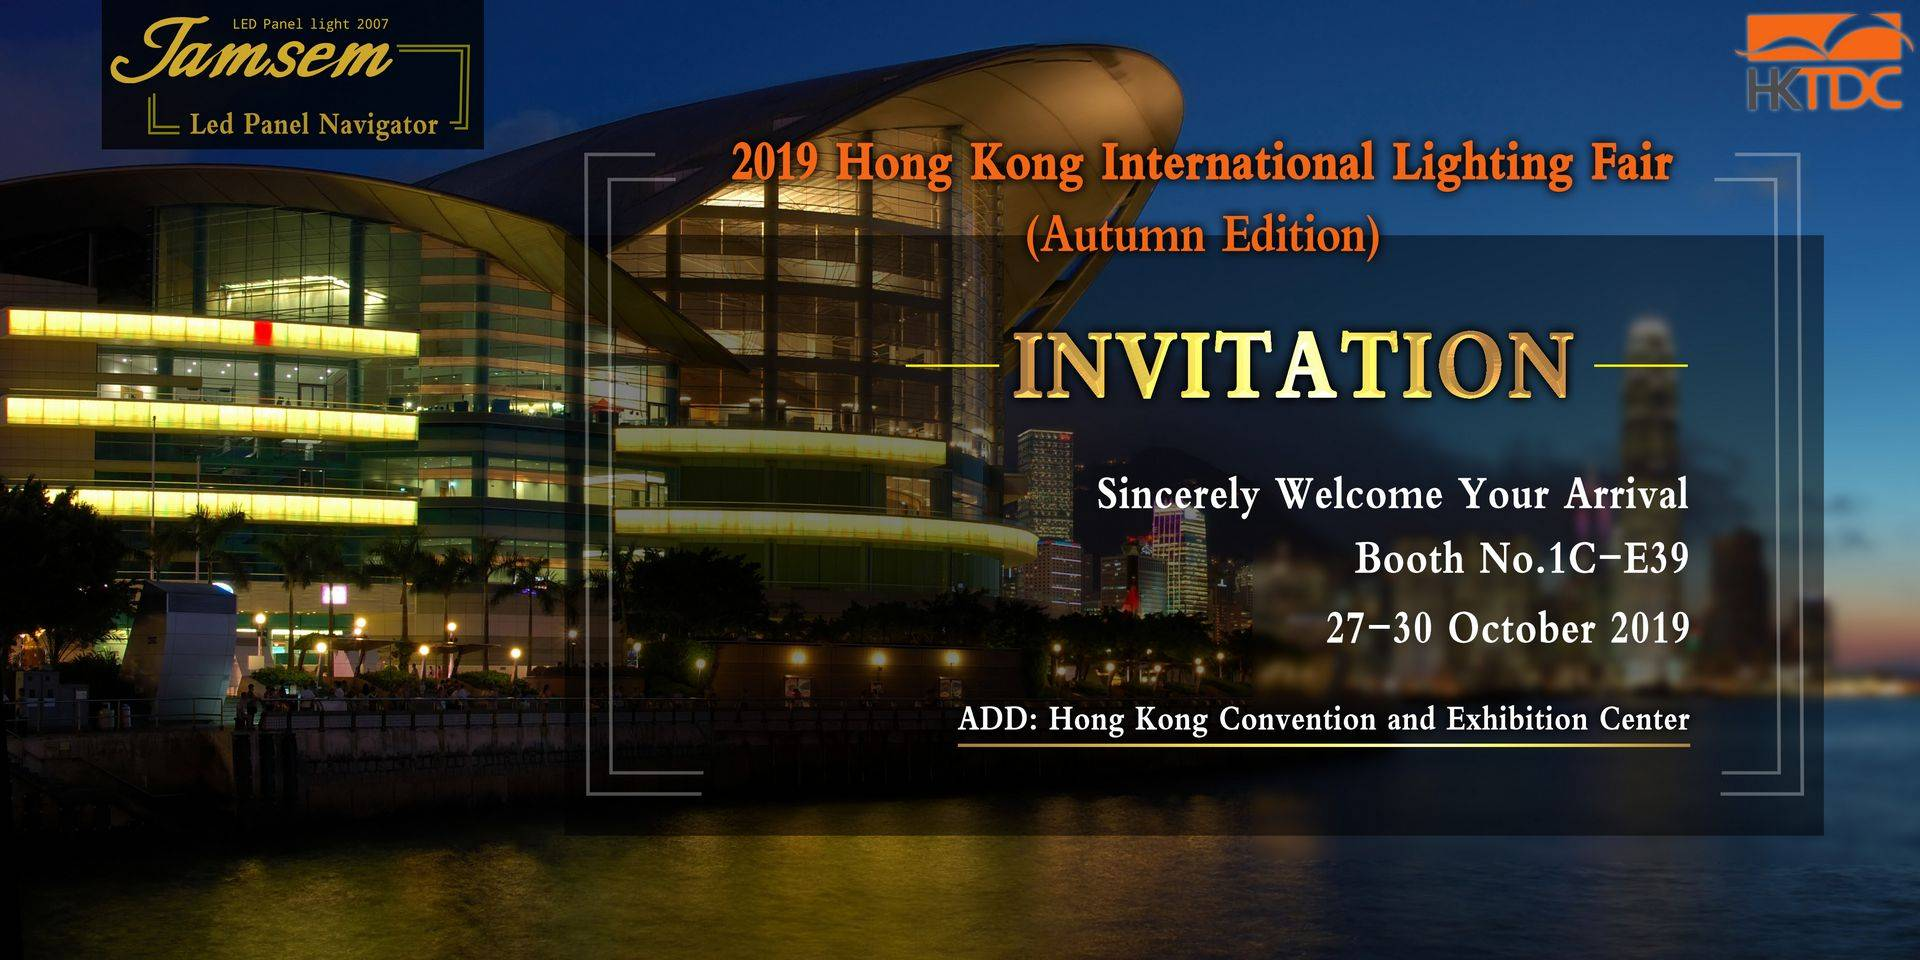 JAMSEM led panel light manufacturer invitation in HongKong HKTDC lighting fair